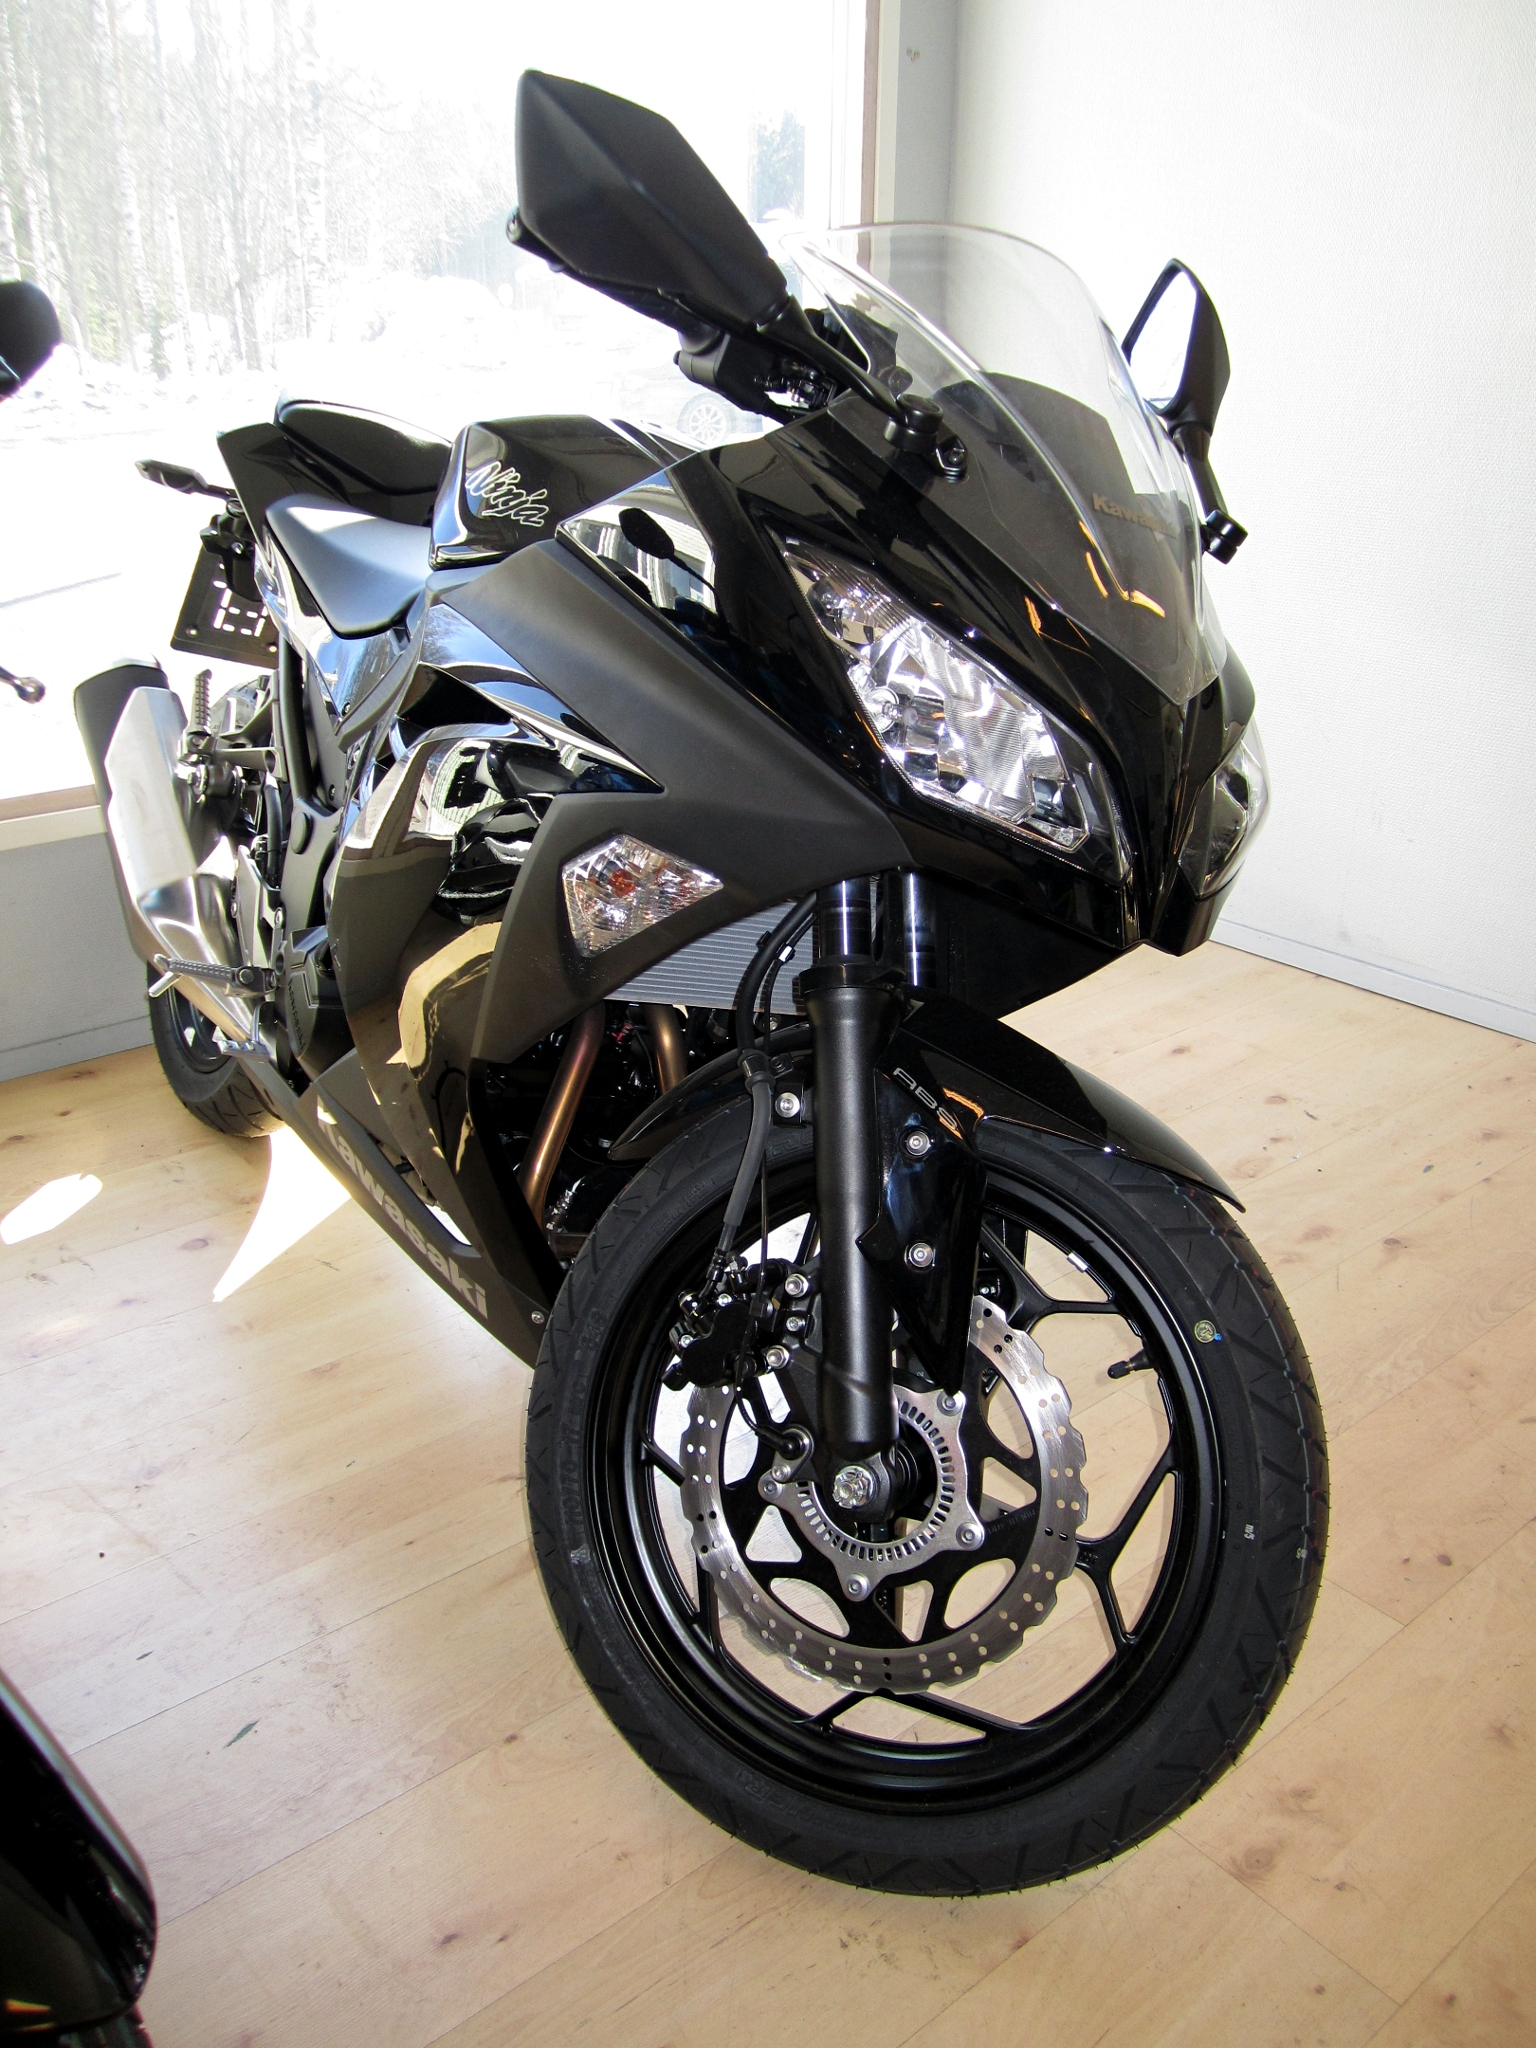 Can you ride a Kawasaki Ninja 300 with an A2 licence?